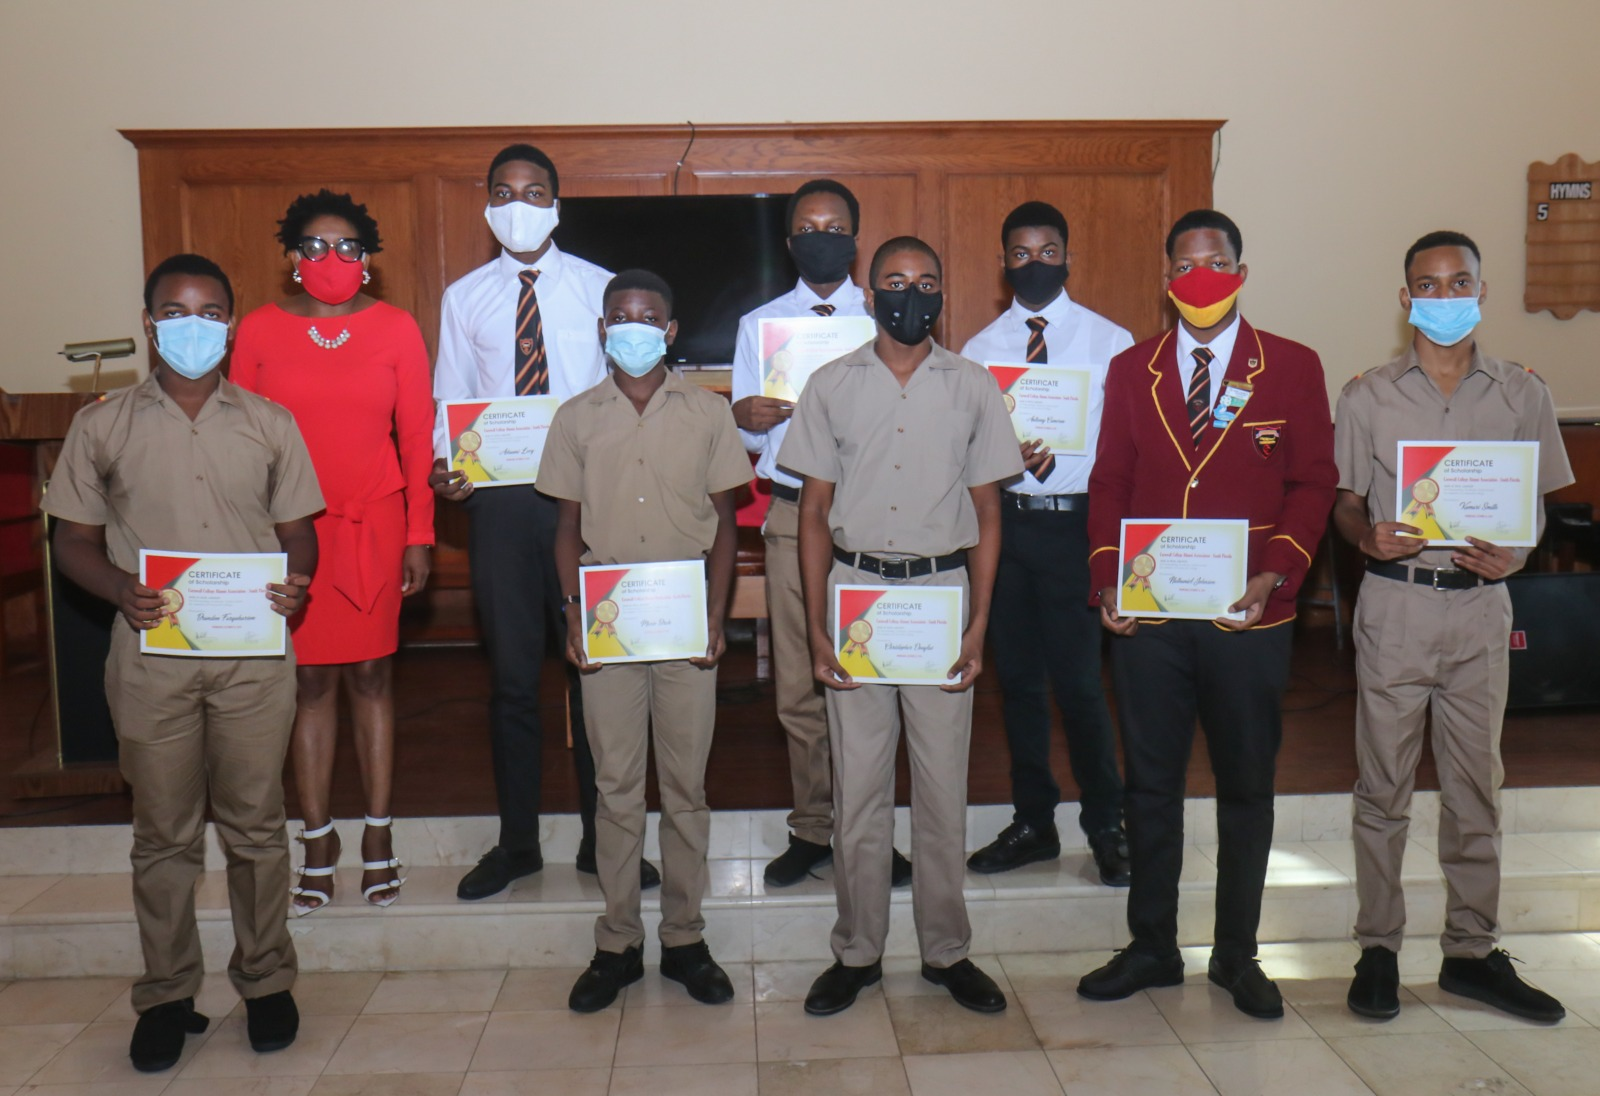 Cornwall College Alumni Association of South Florida 2020 scholarship recipients